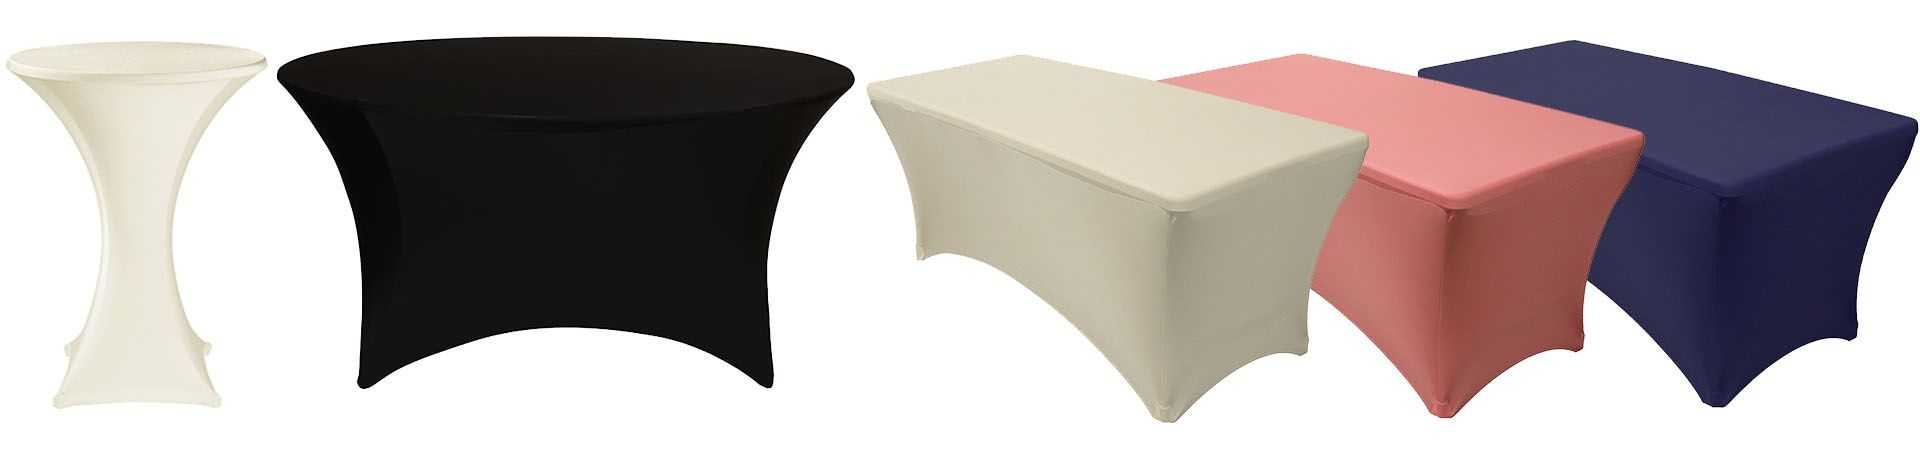 wholesale spandex table covers